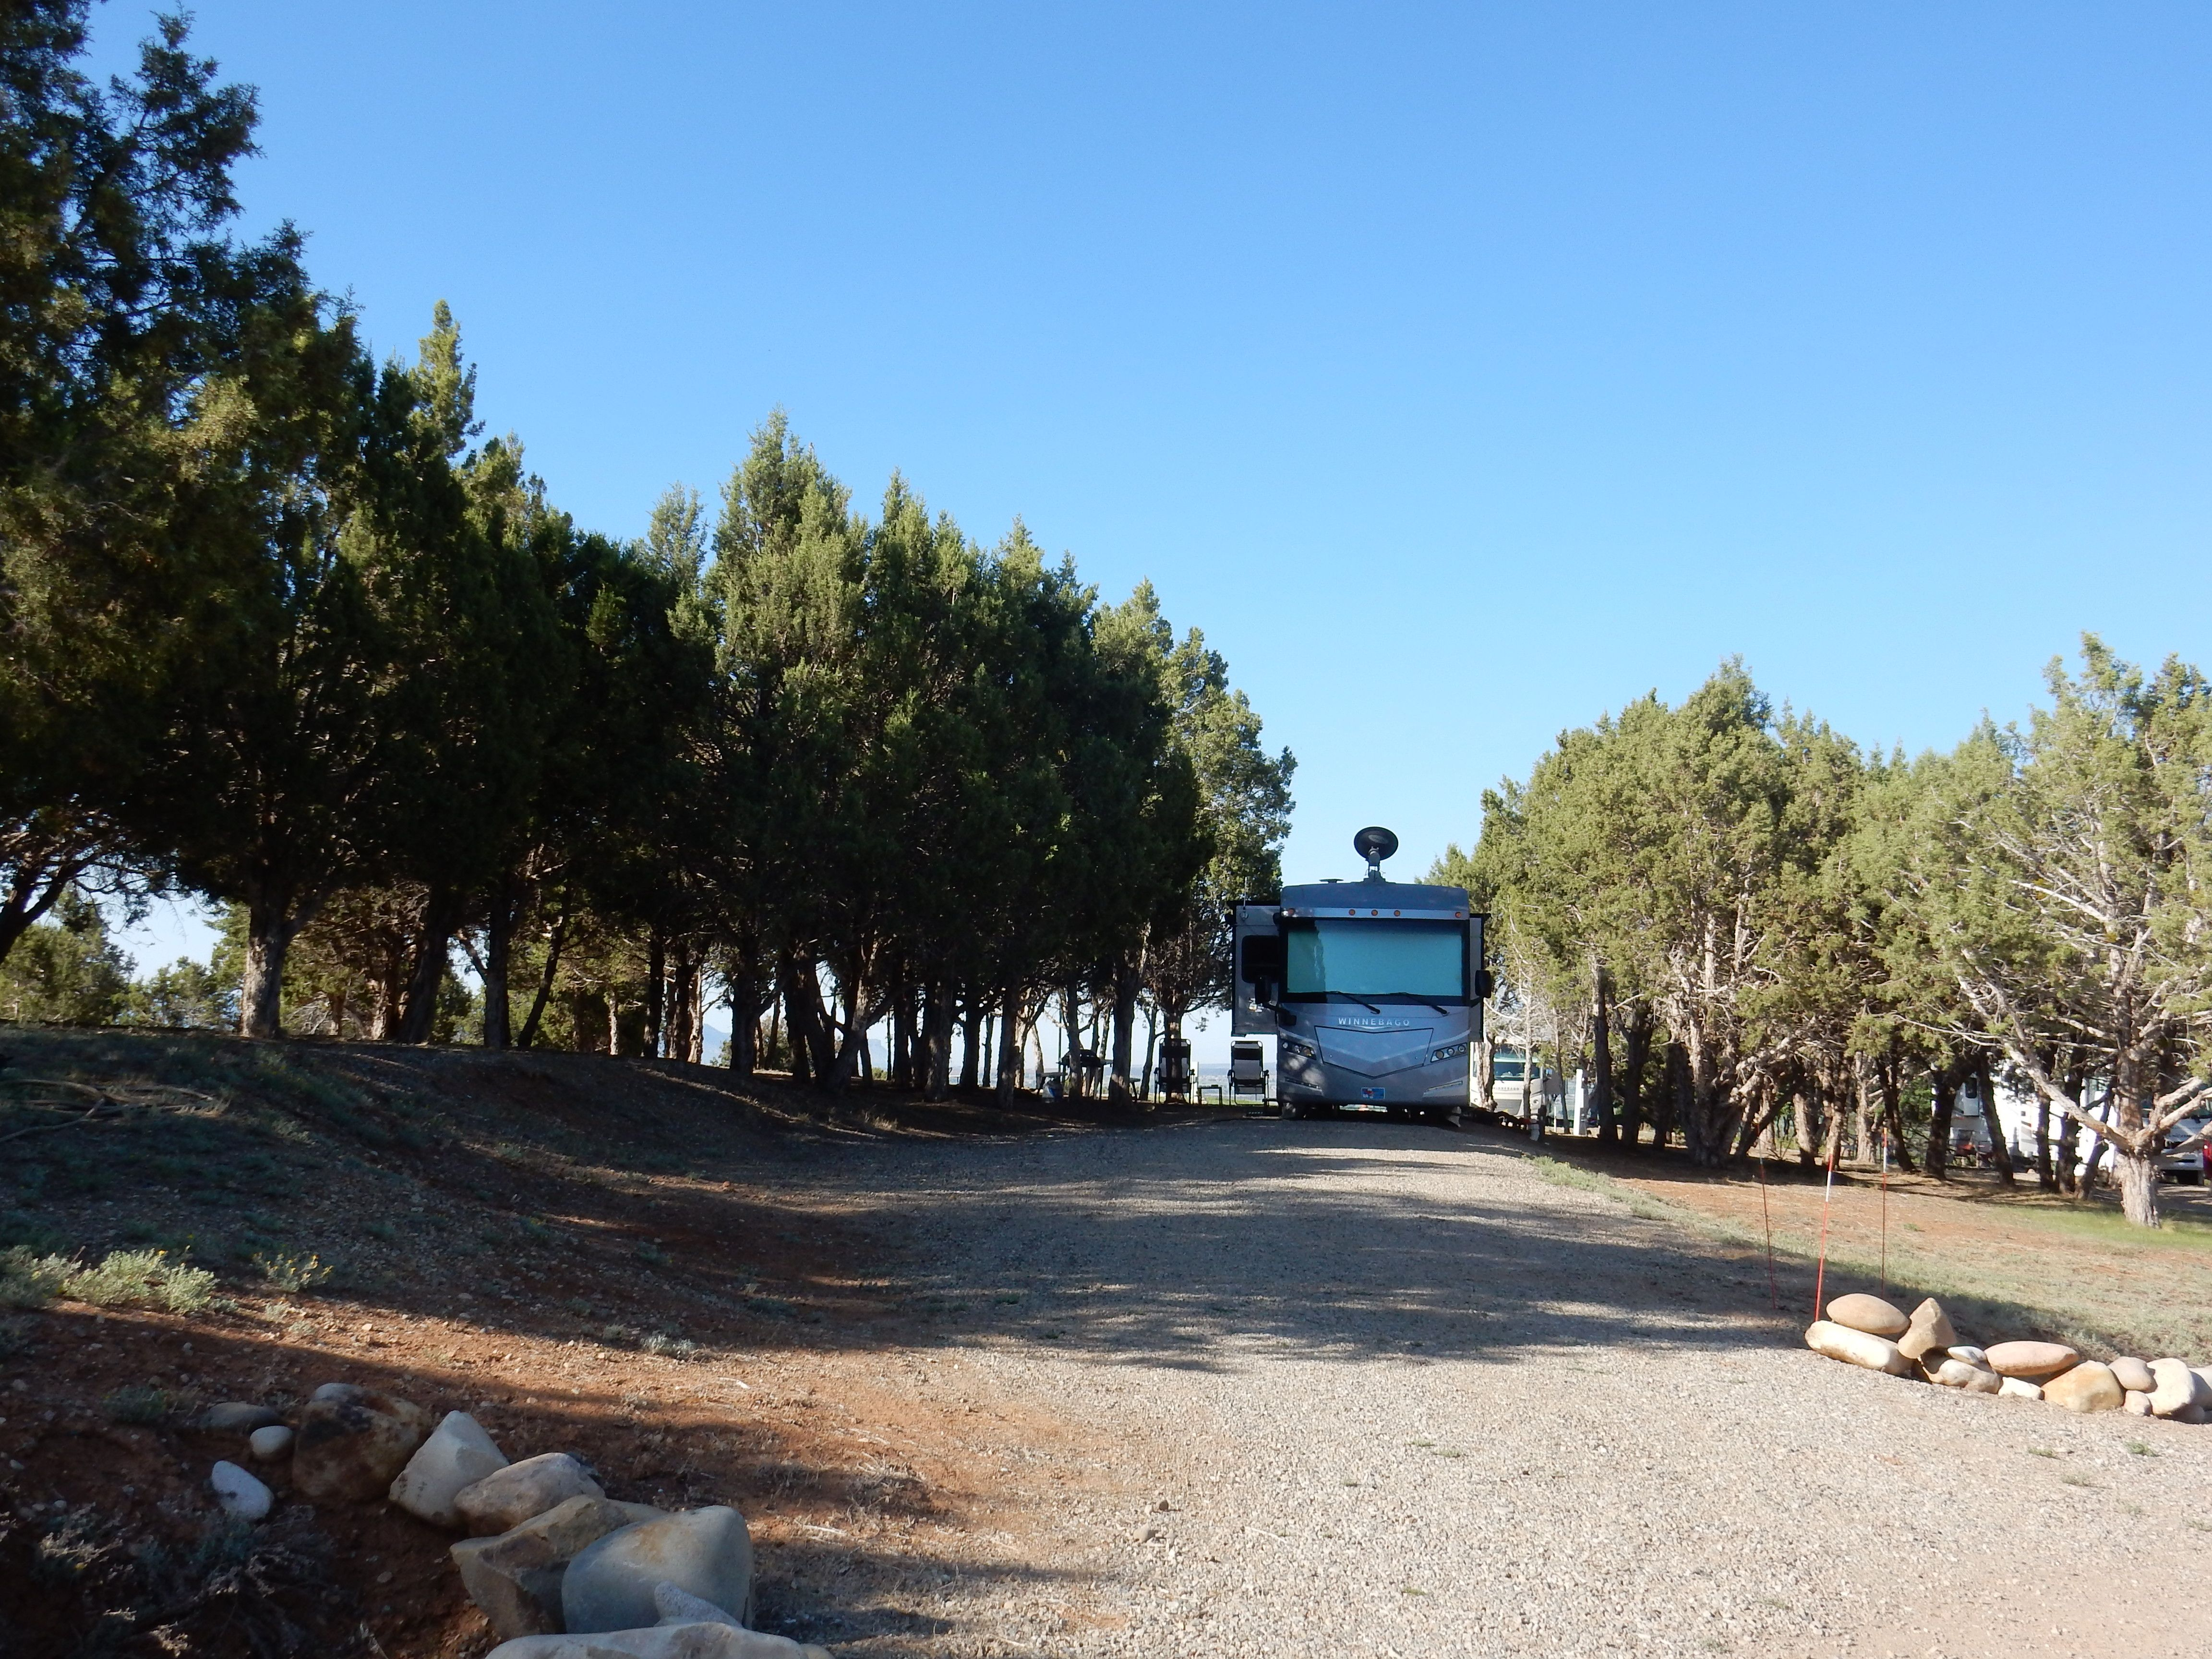 Extremely Spacious Rv Sites At The Views Rv Park Campground Near Dolores Southwest Co Rv Parks And Campgrounds Rv Parks Camping Colorado